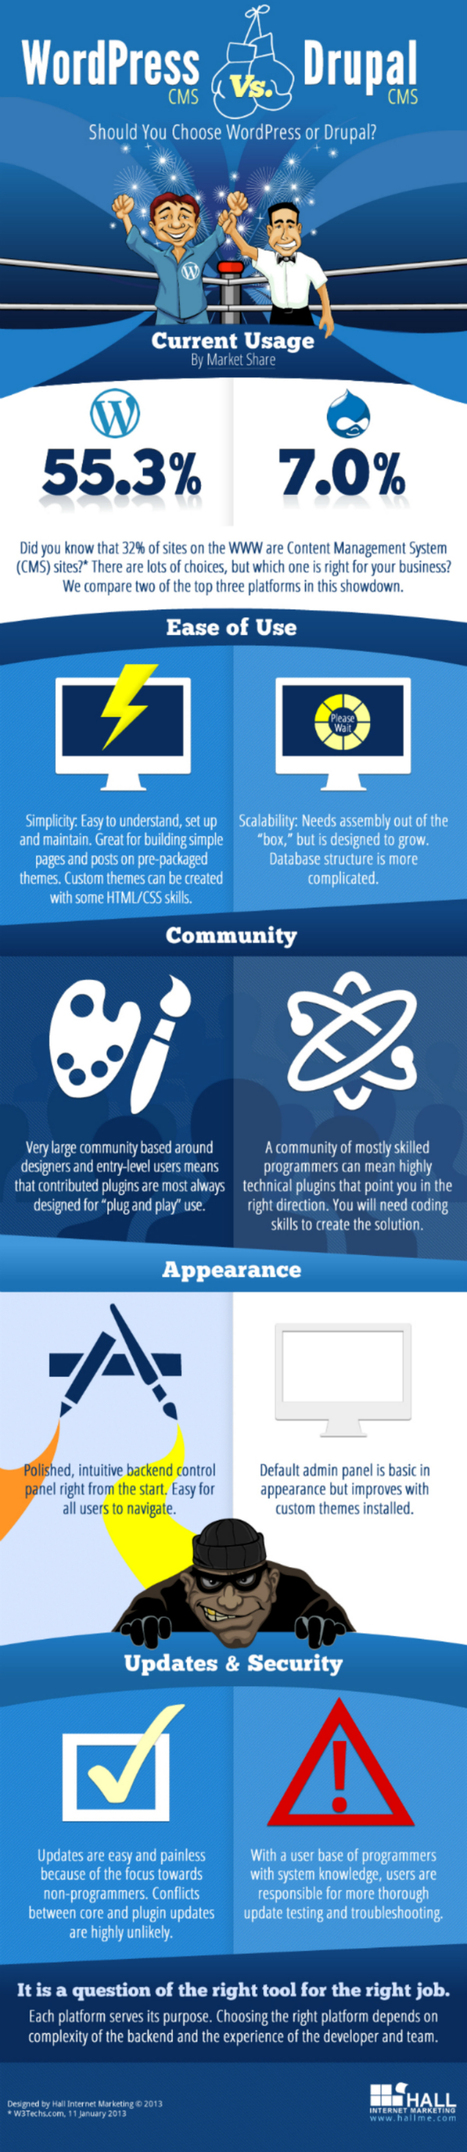 Drupal and WordPress: Friends or Foes? [Infographic] | Drupal to WordPress in 15 min +Video! | Scoop.it